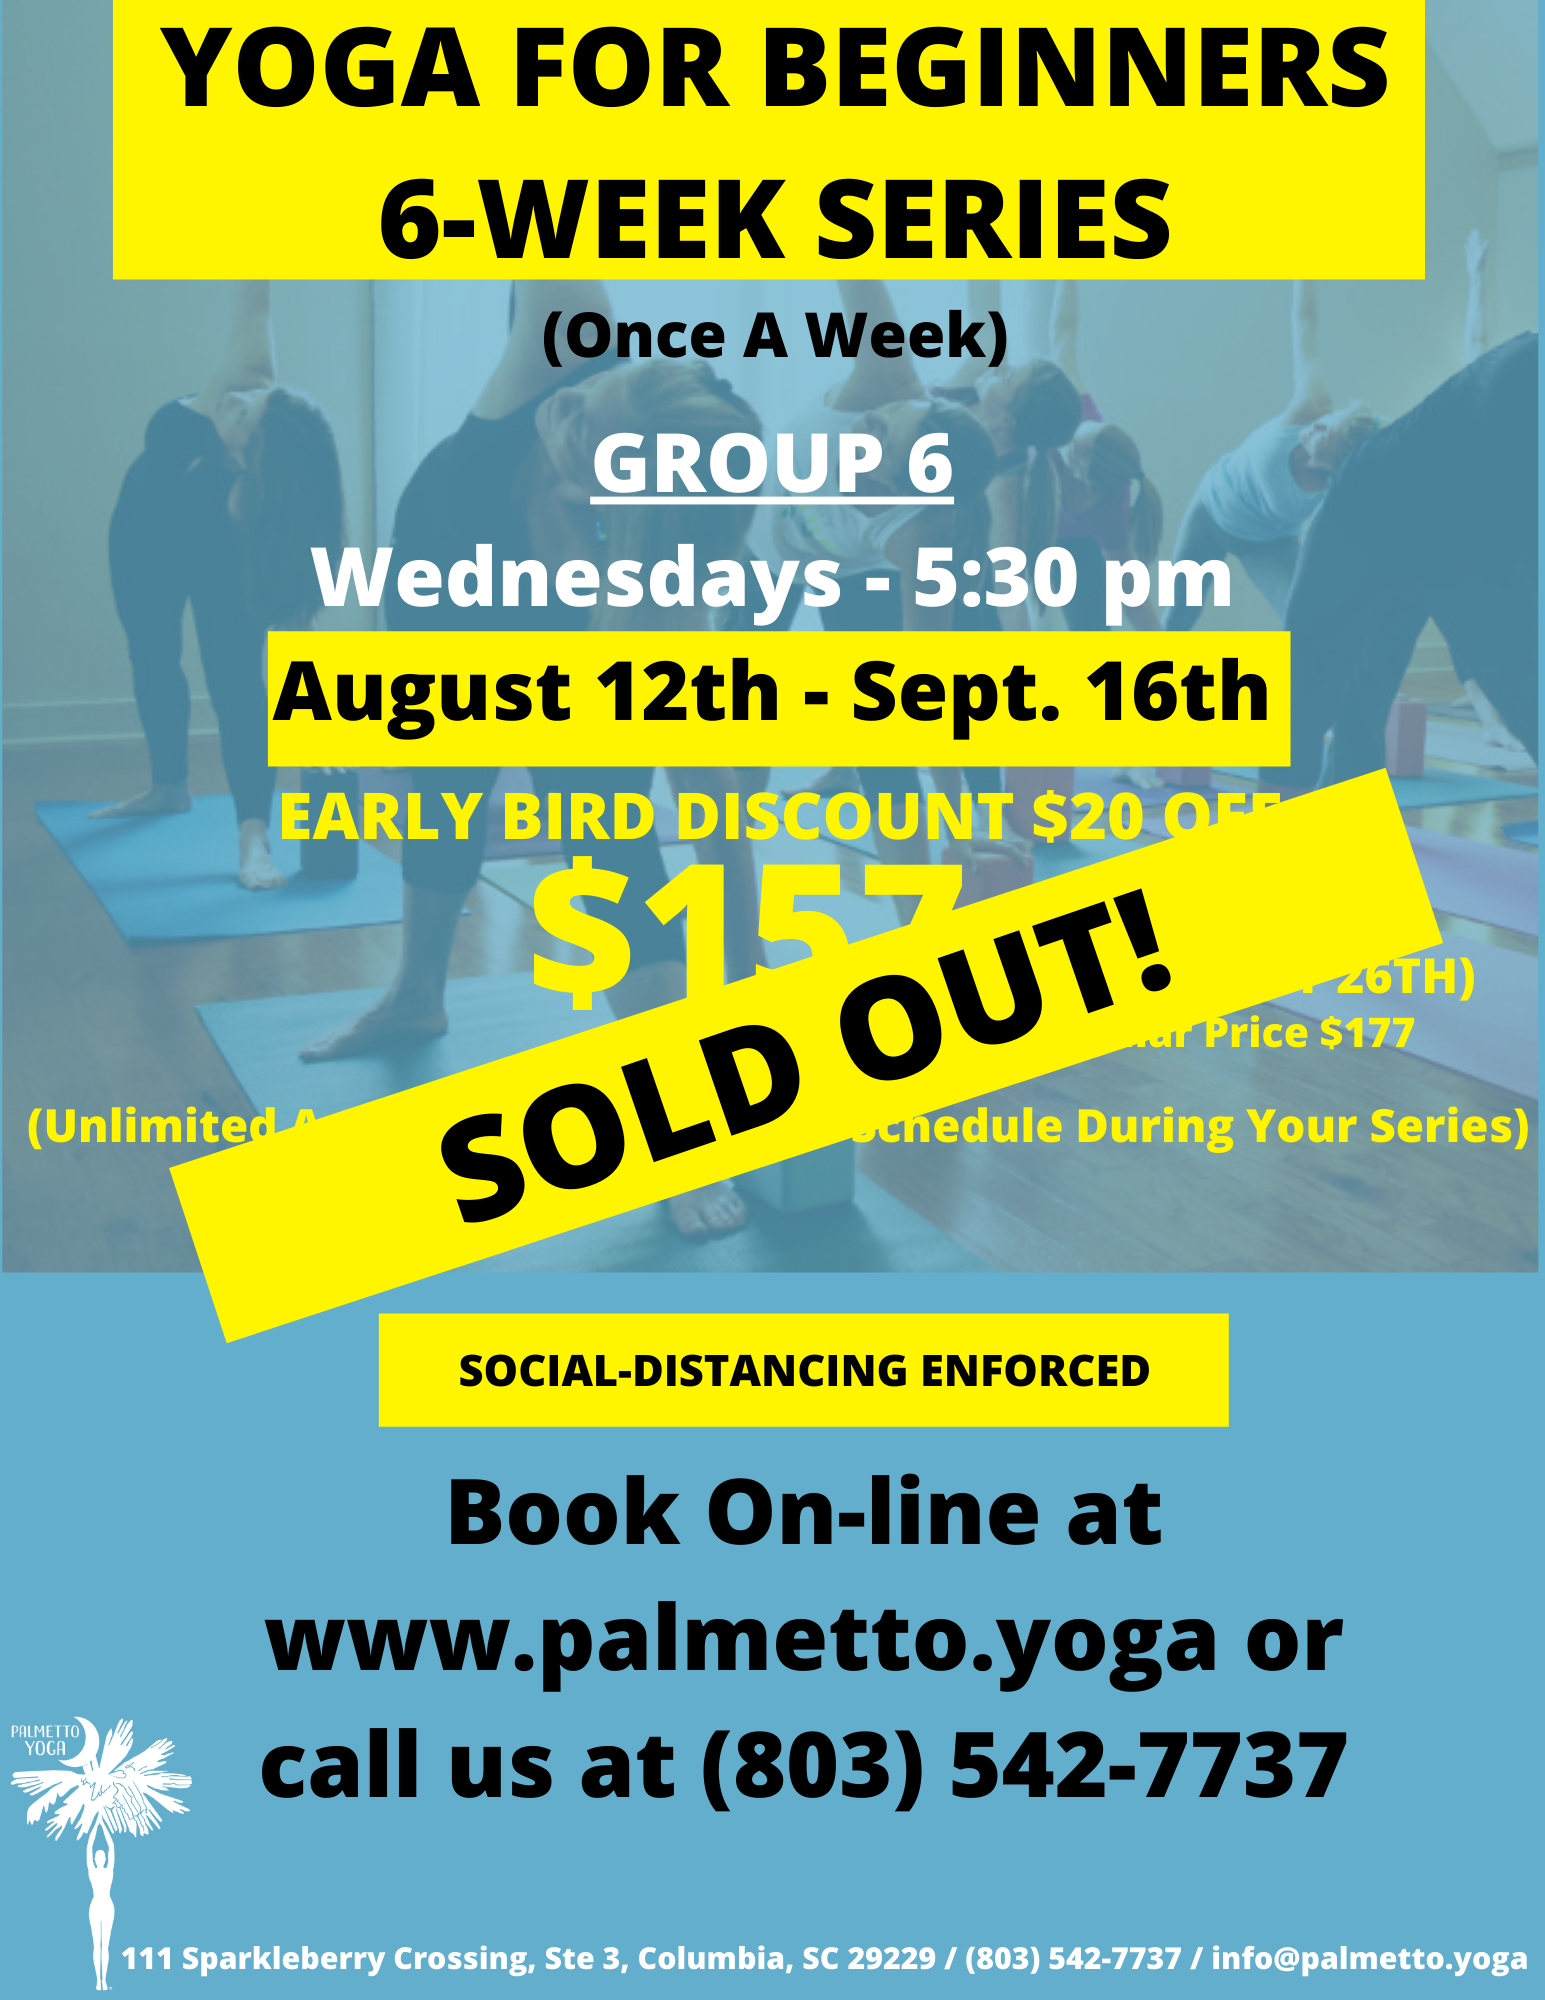 Aug 22 -YOGA FOR BEGINNERS 6-WEEK SERIES